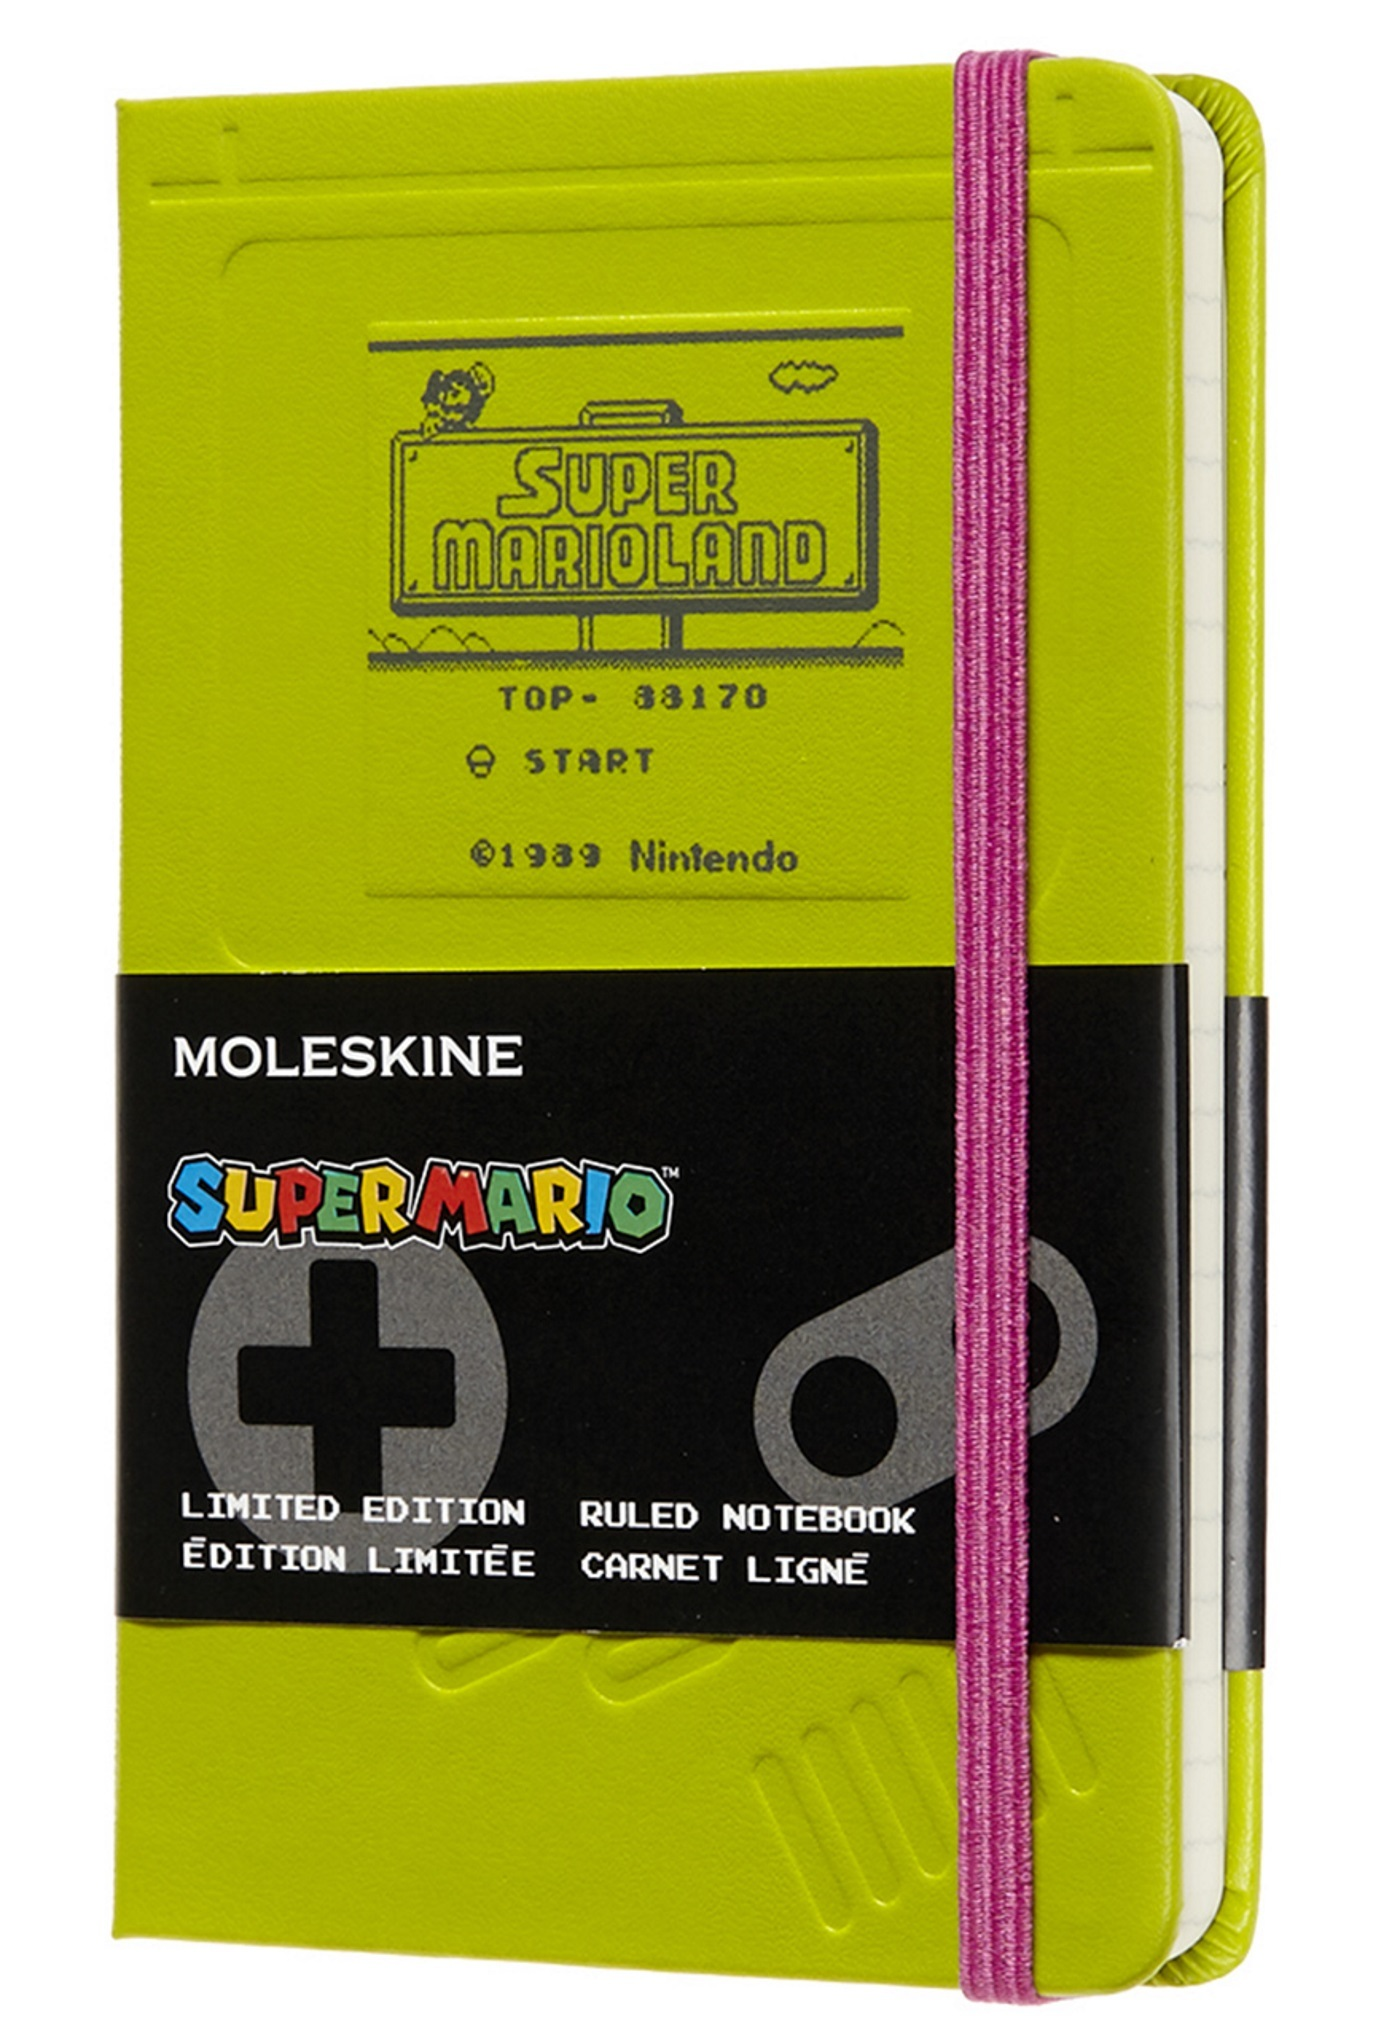 SUPER MARIO CARNET POCHE LIGNE GAME BOY